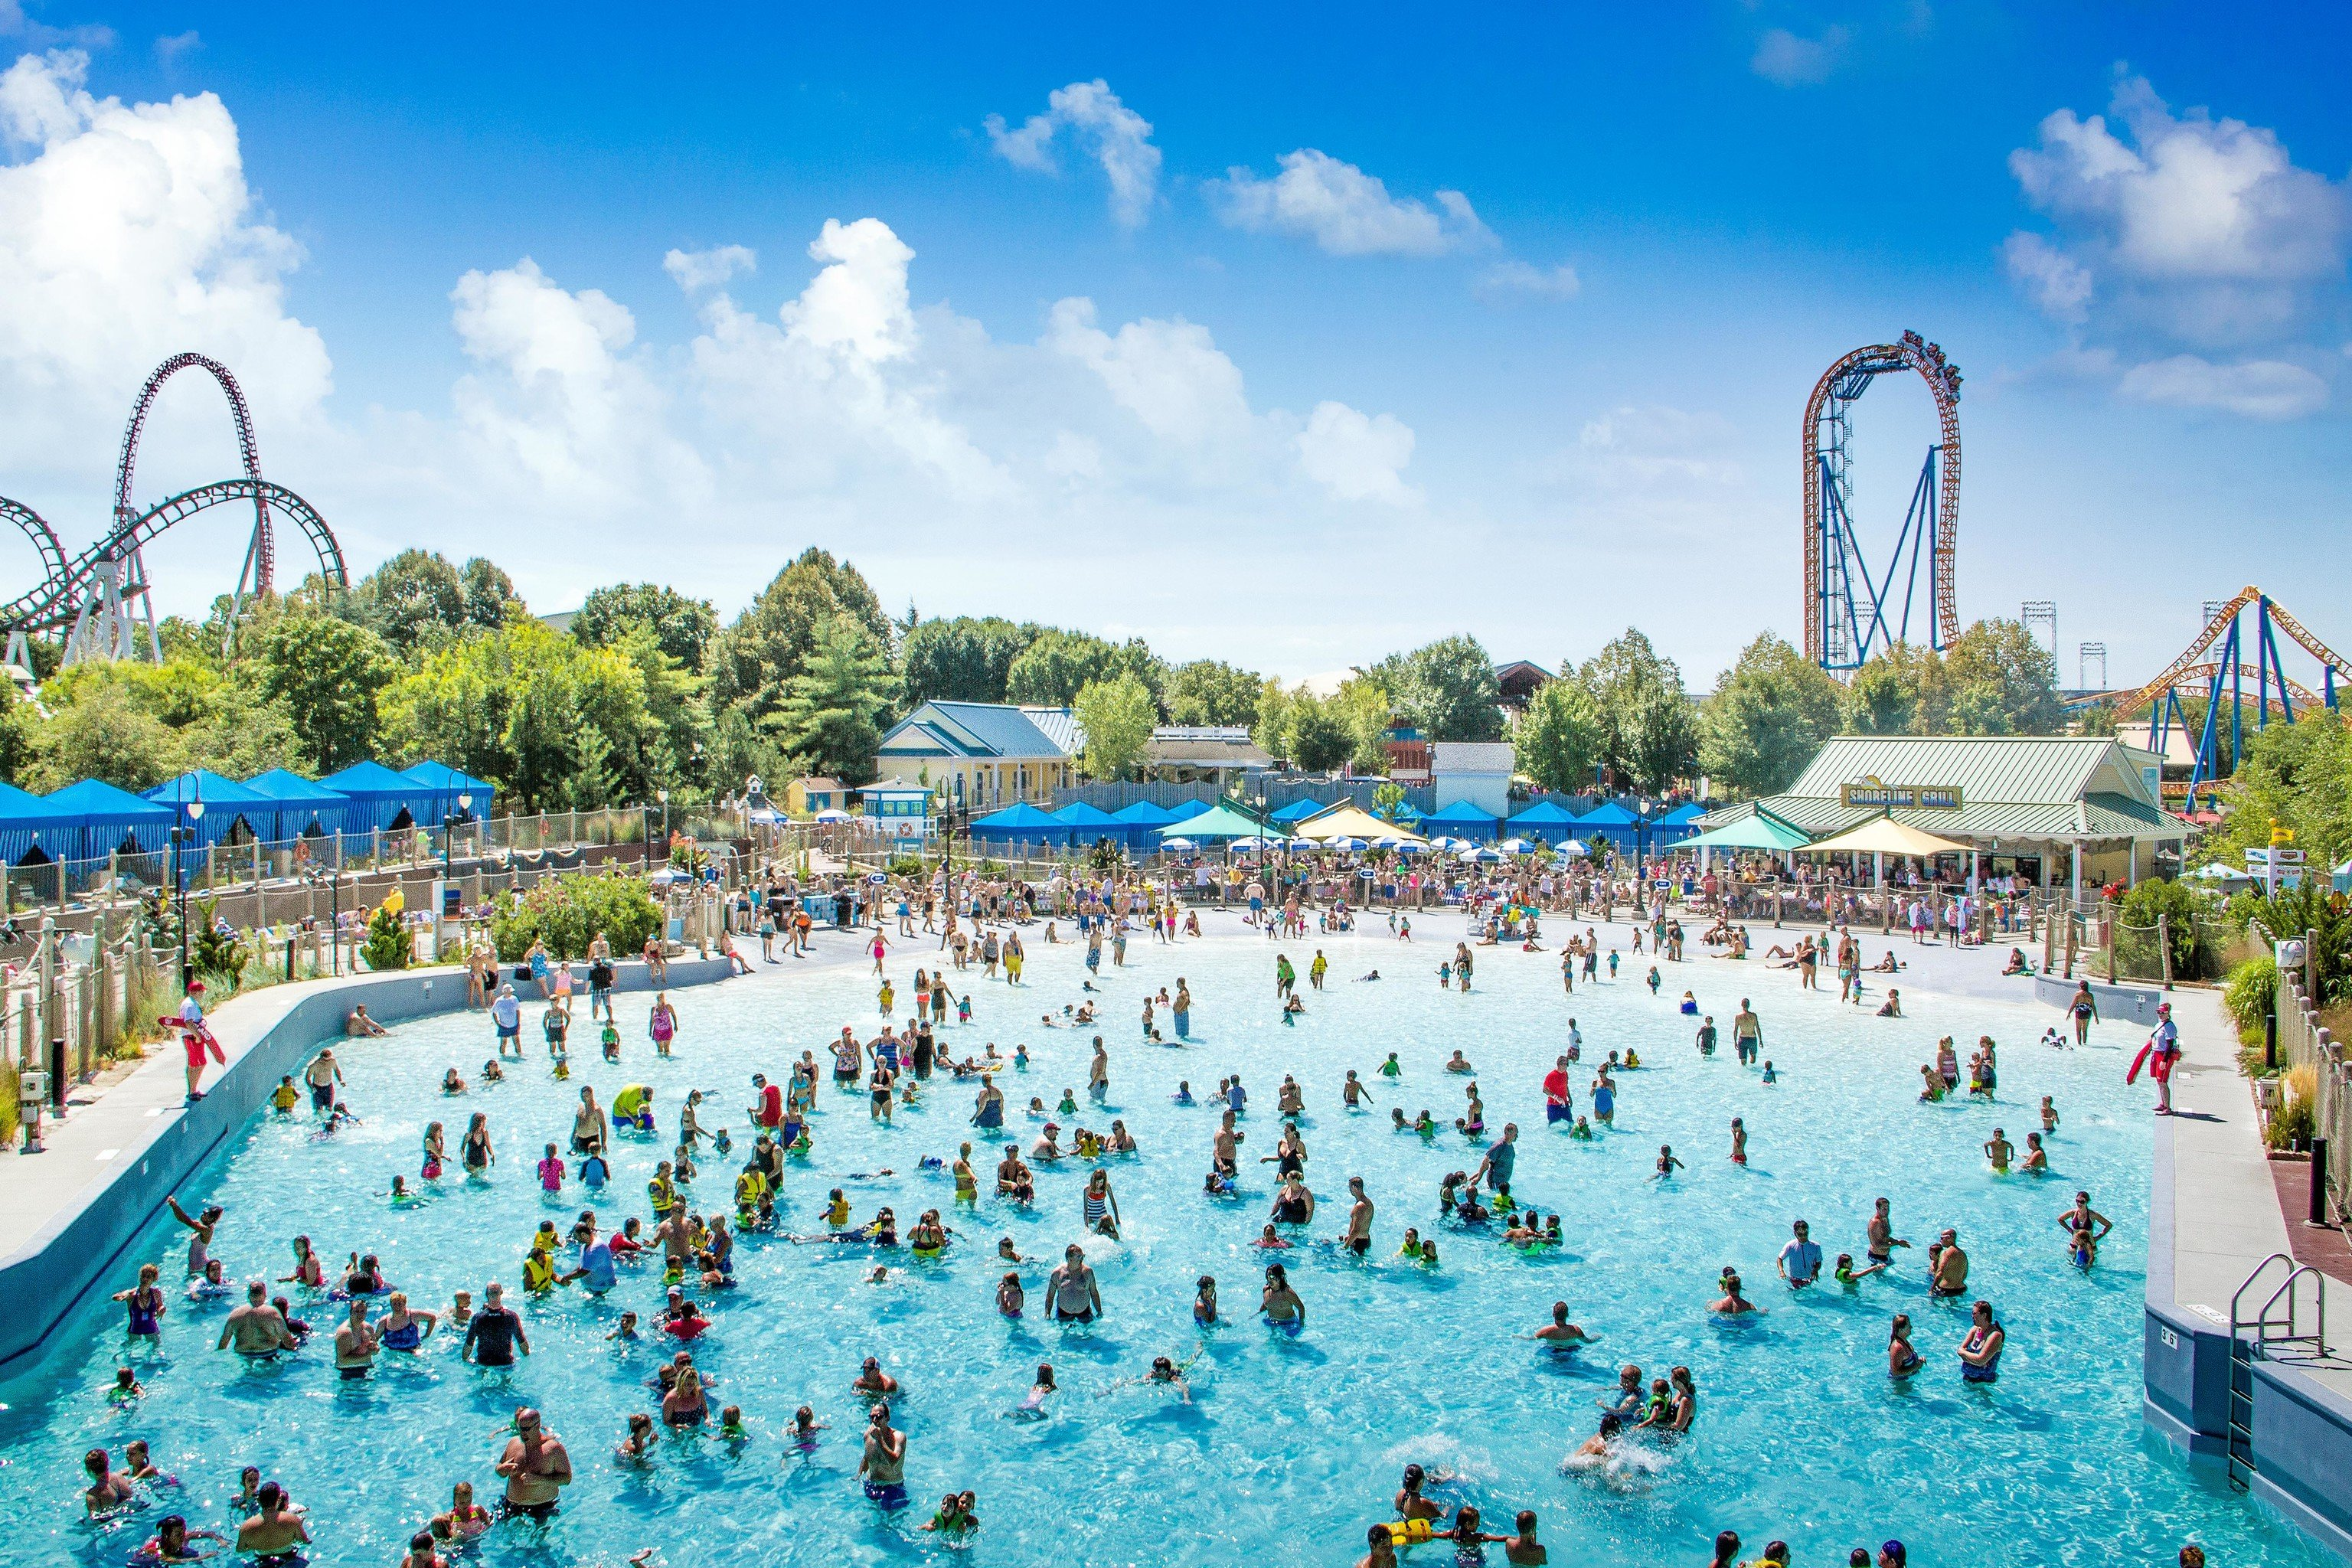 Trip Ideas Weekend Getaways sky outdoor amusement park Water park park leisure Resort people recreation nonbuilding structure outdoor recreation swimming pool swimming day crowd